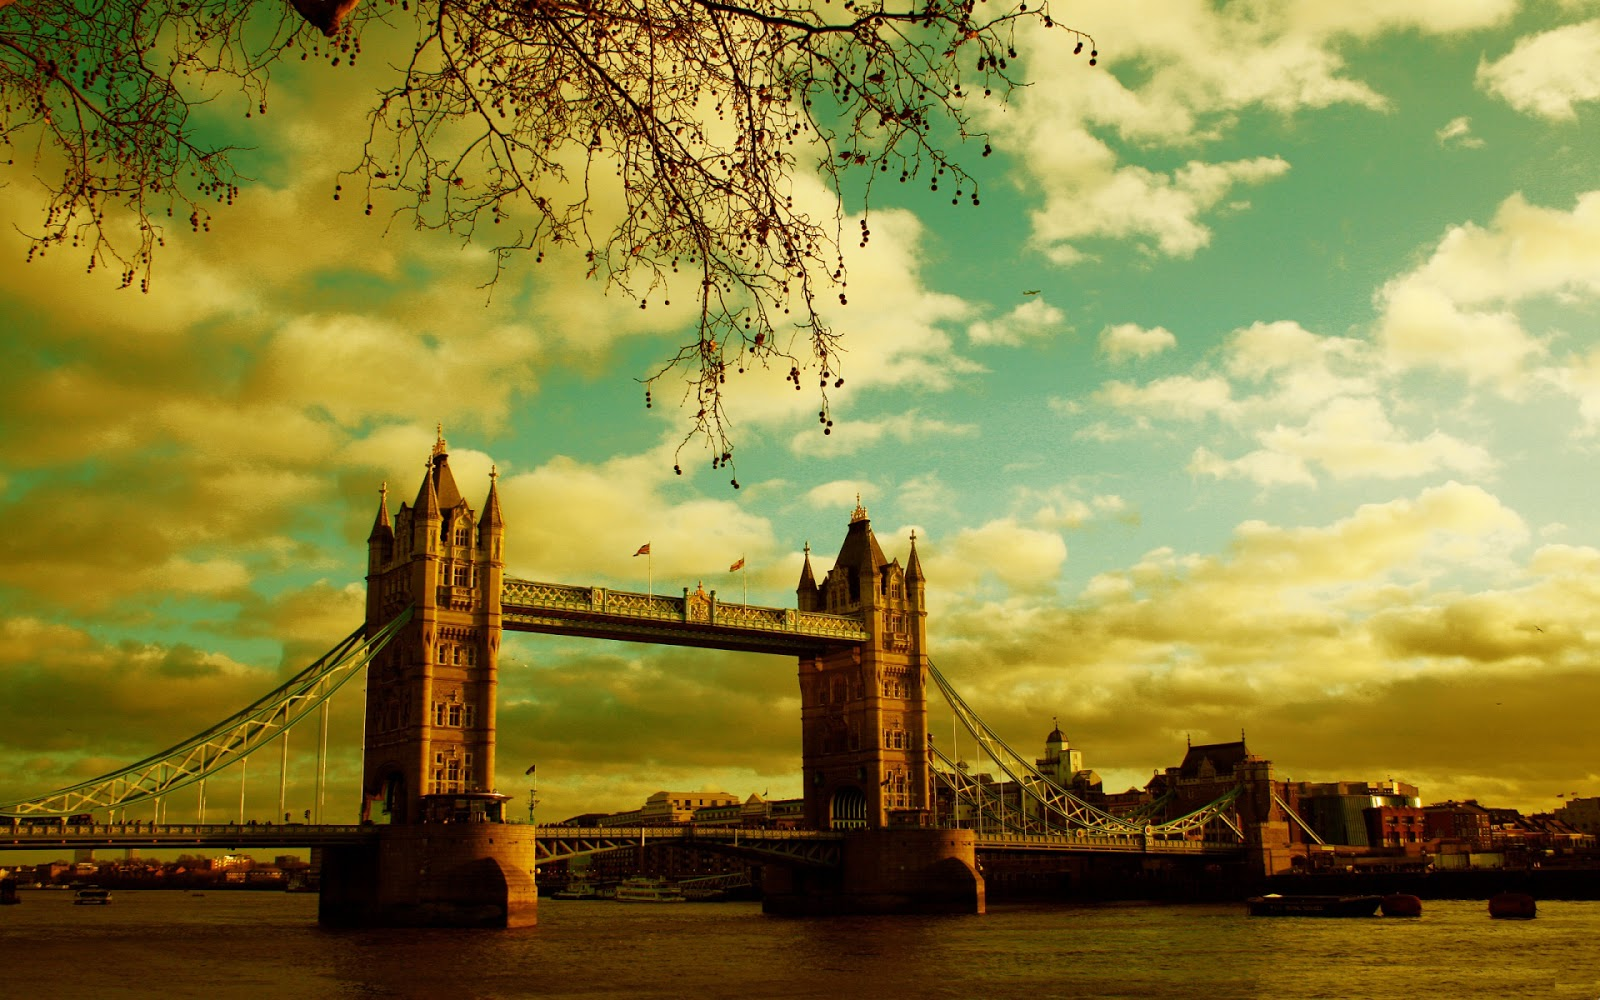 Free Download Wallpaper HD : tower bridge of london hq full hd wallpapers free download 2013